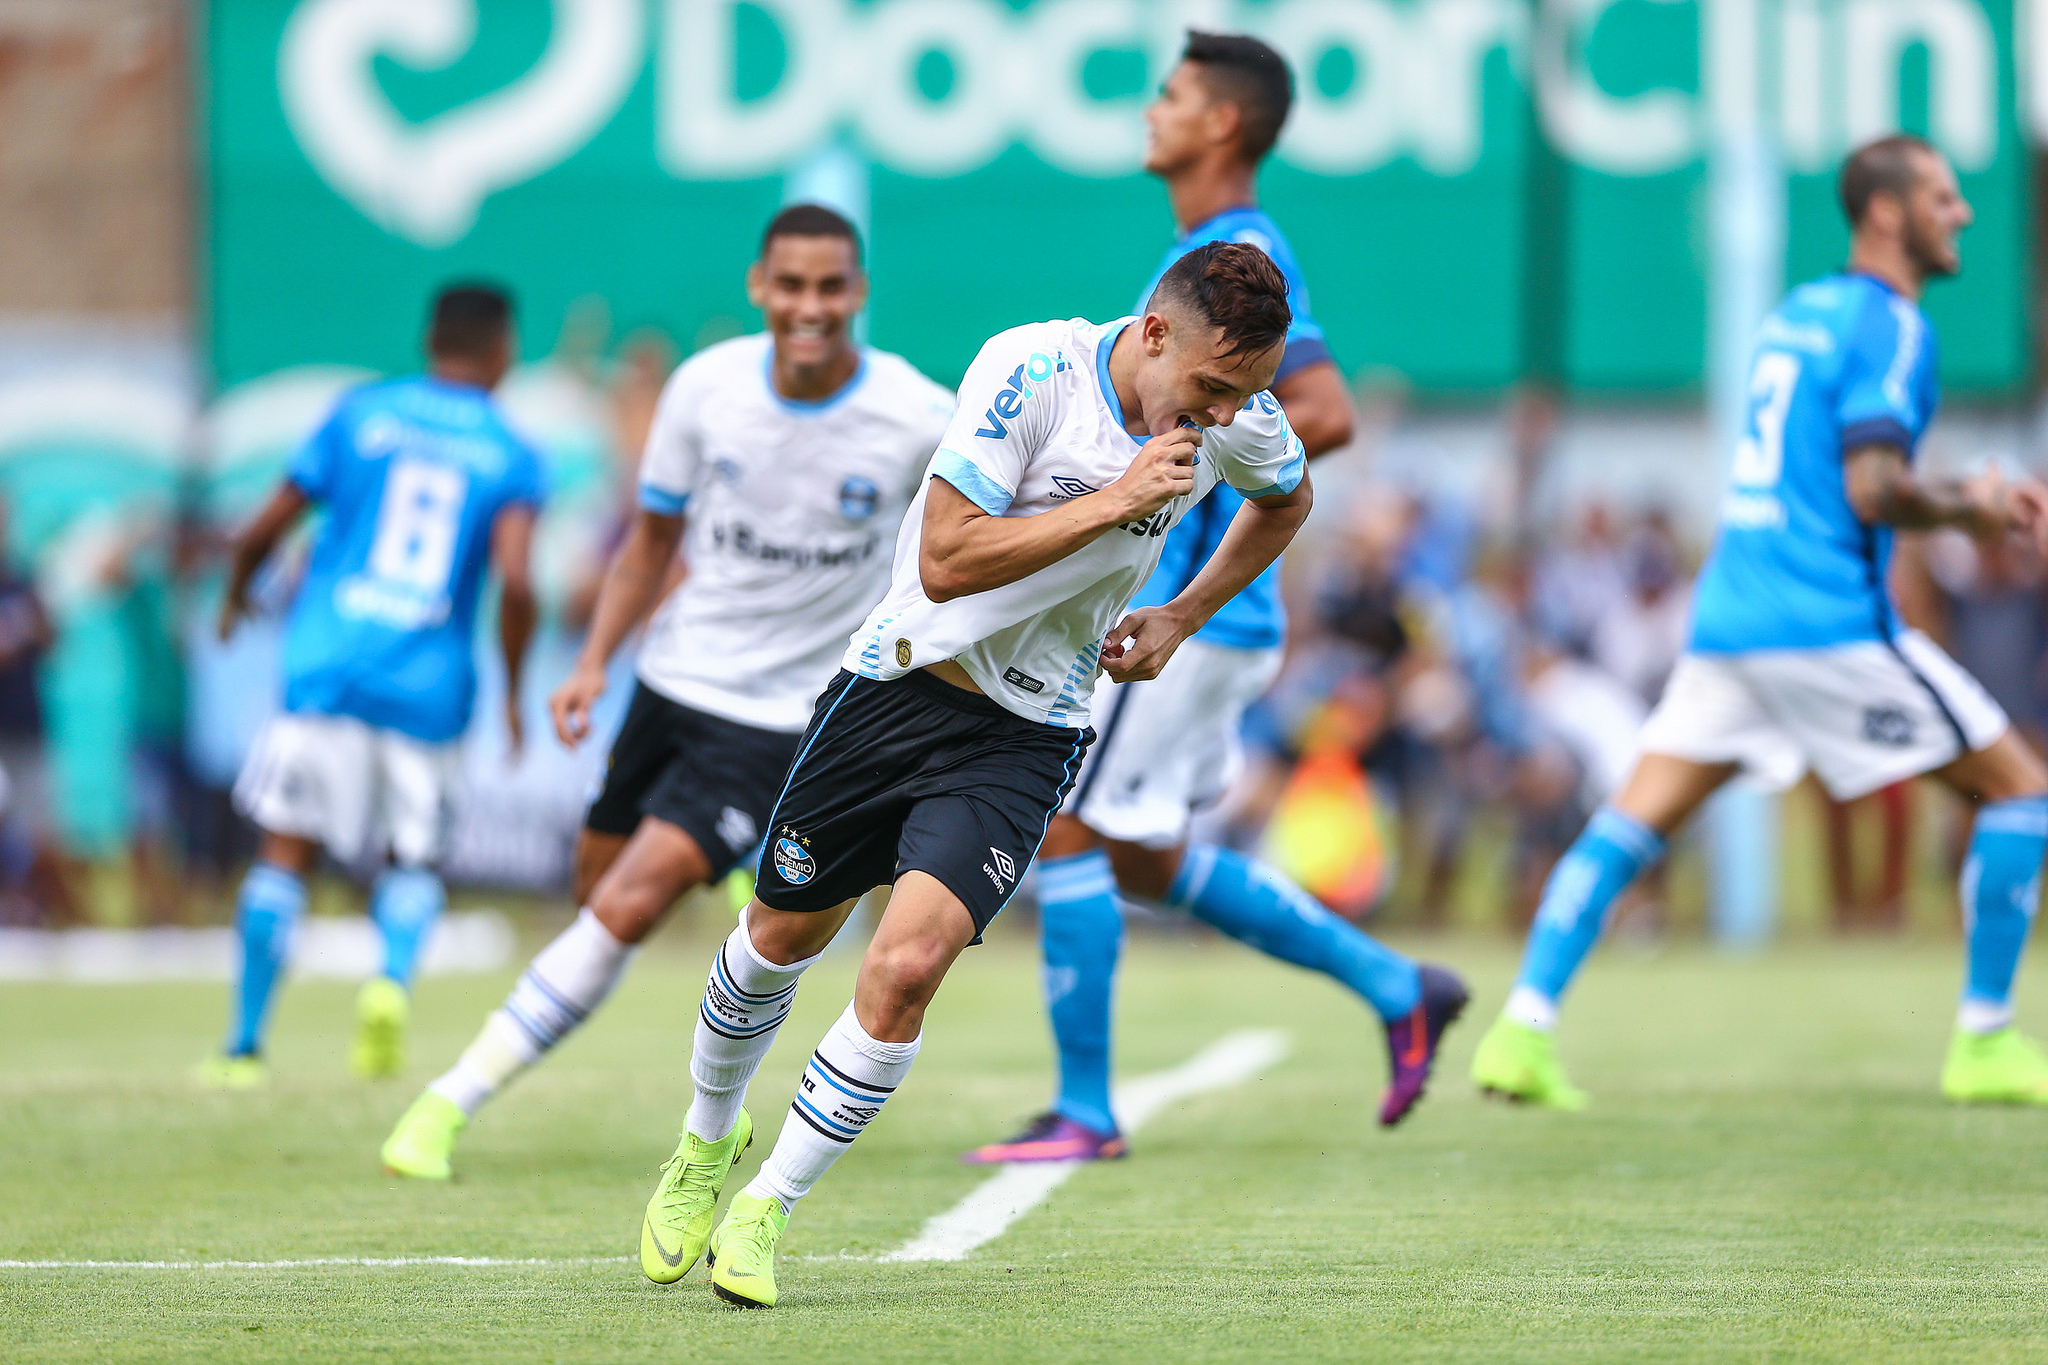 Confira as principais noticias do Grêmio neste domingo 1652eac0db4f1